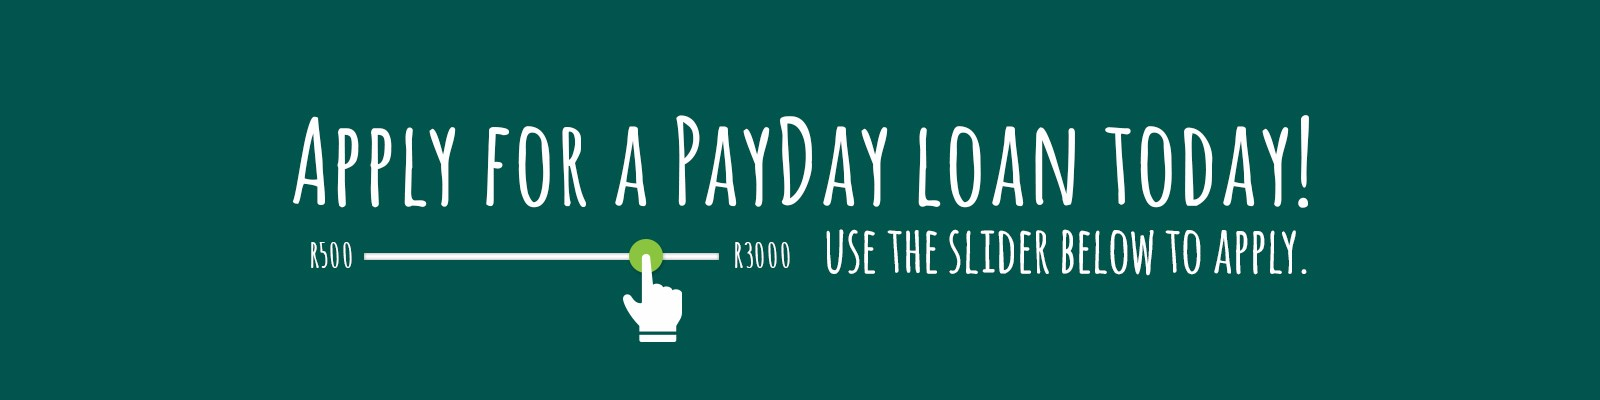 PayDay Loan Banner3